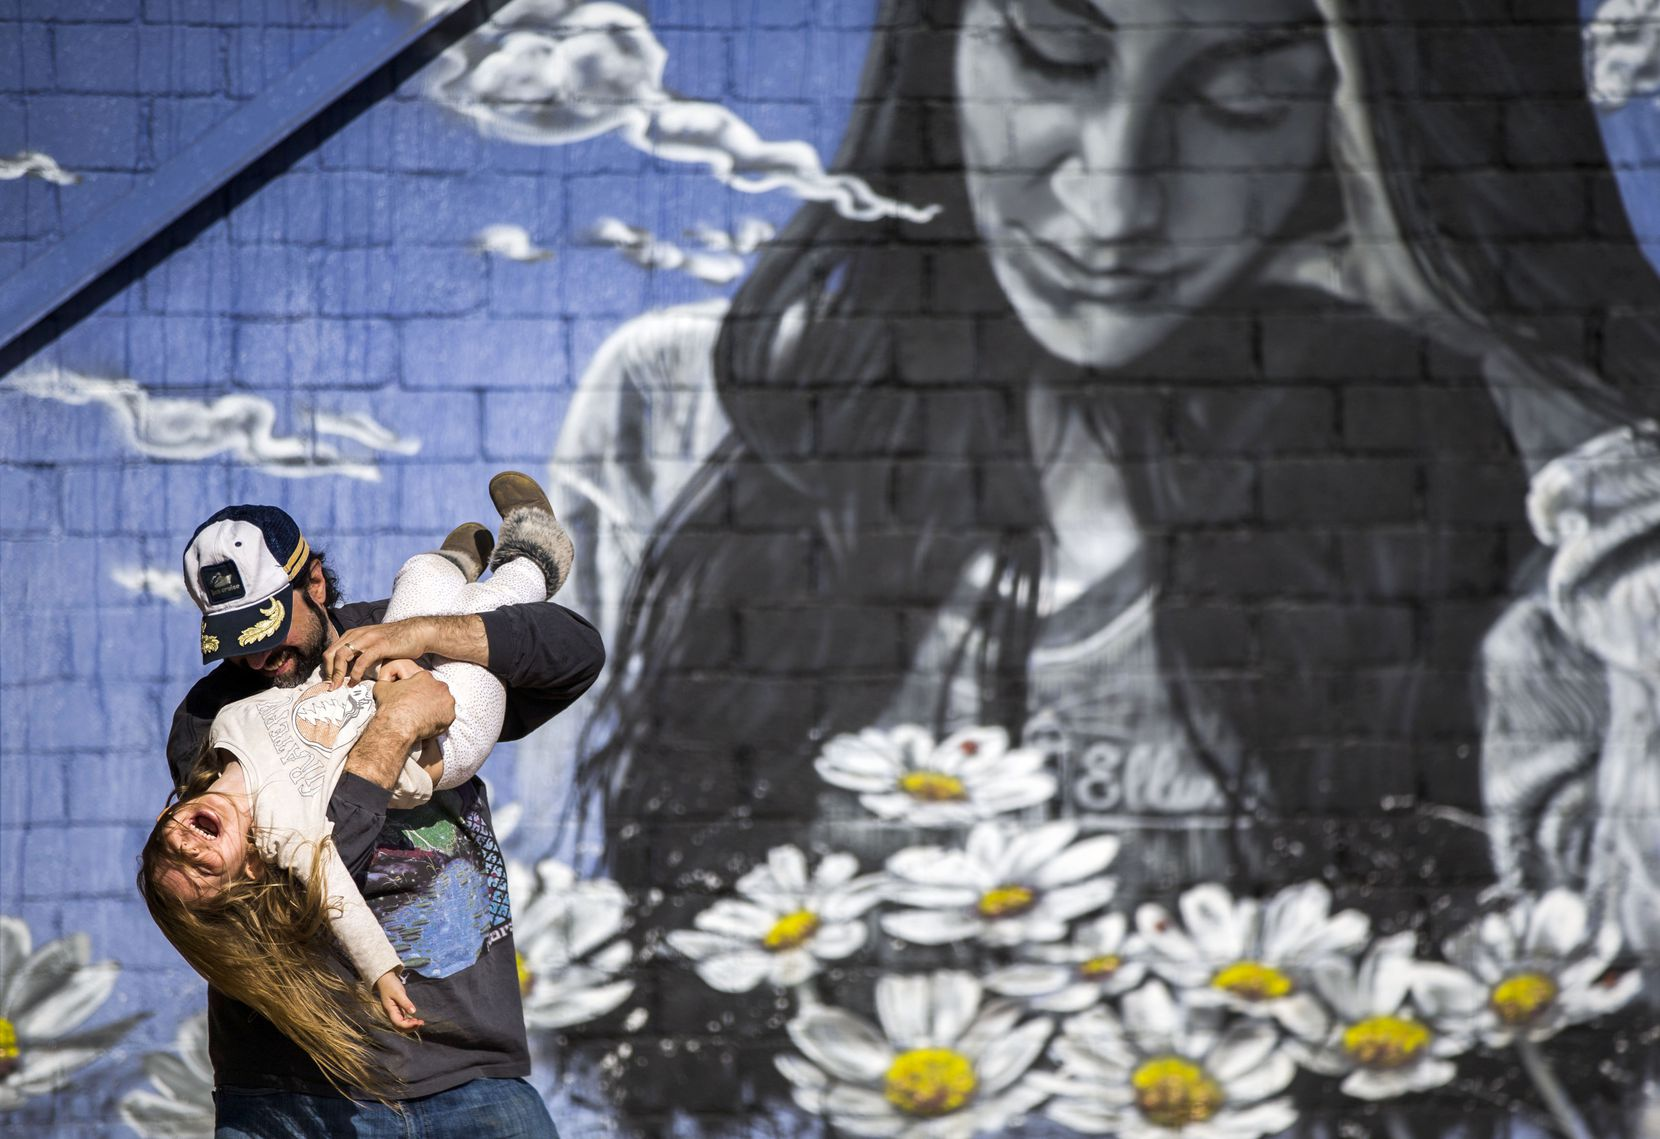 Three-year-old Maryella Woodstock Most is tickled by her father, Johnny Woodstock, in an outdoor area at Deep Ellum Art Company in Dallas on Sunday, March 3, 2019. Woodstock said they recently moved to Dallas from New Orleans. (Daniel Carde/The Dallas Morning News)